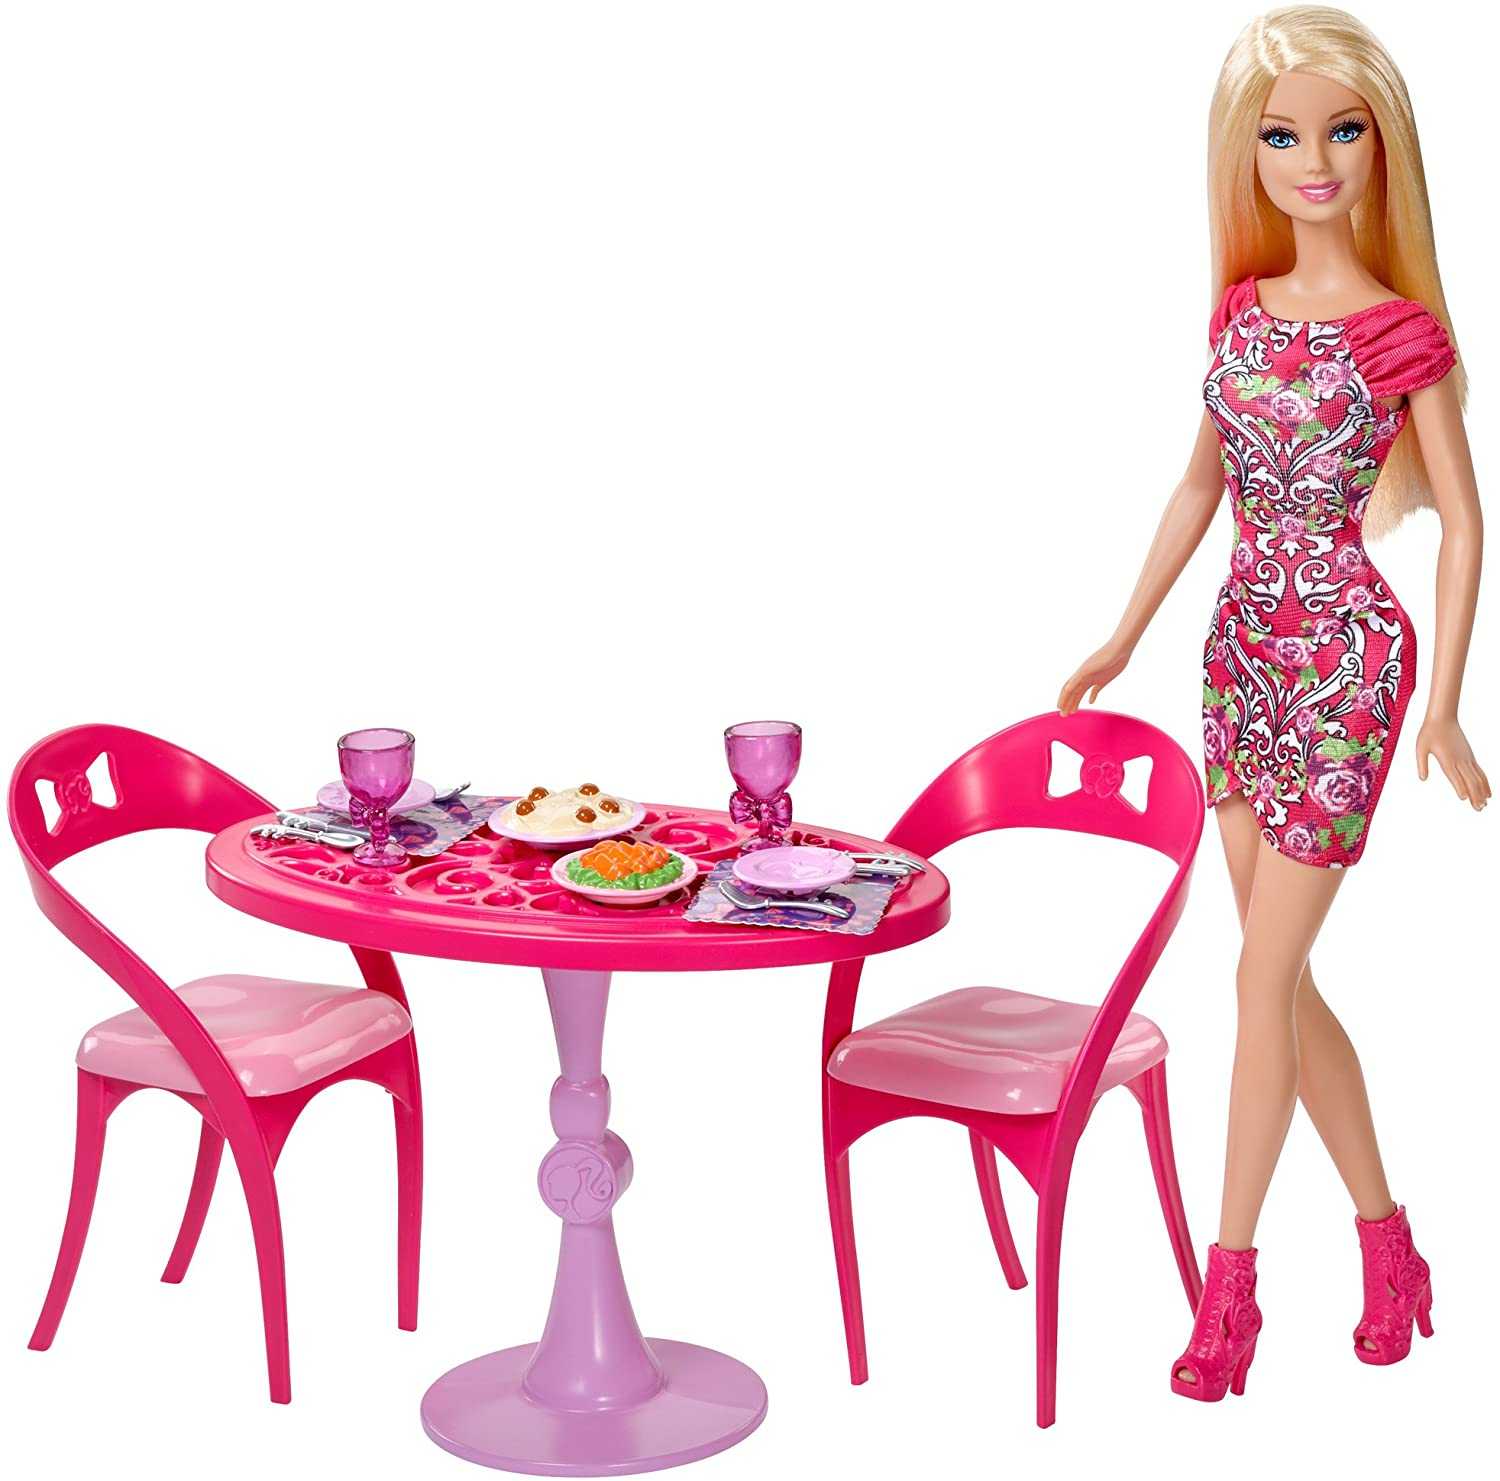 Barbie Doll and Dining Room Set